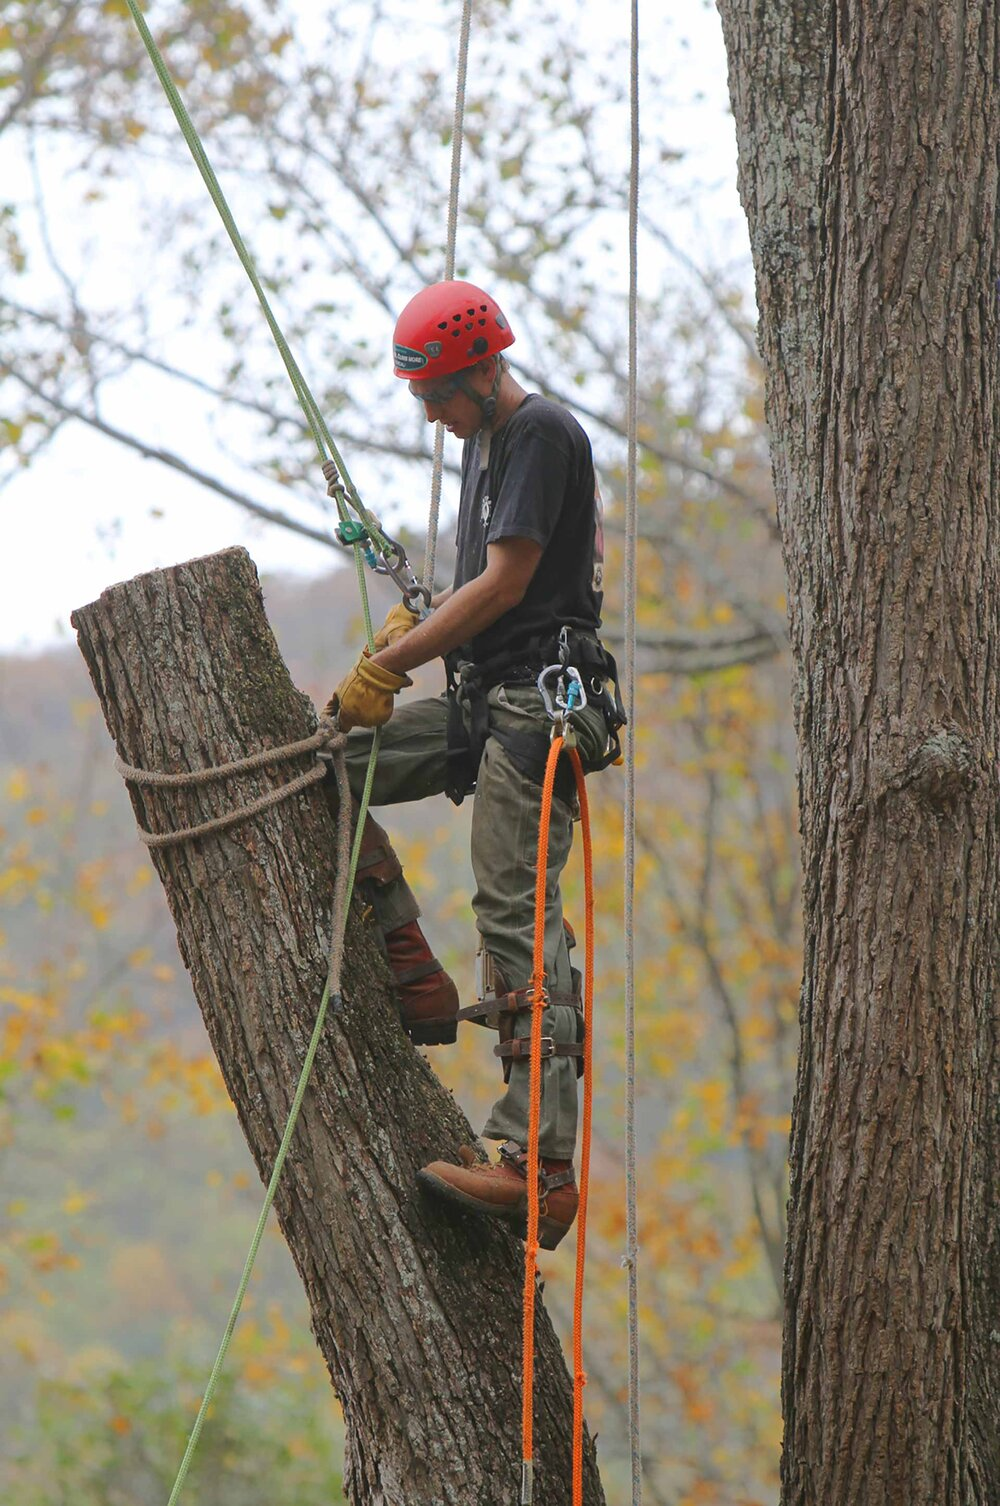 A climbing arborist calmly taking down a giant tree, piece by piece.    Image source